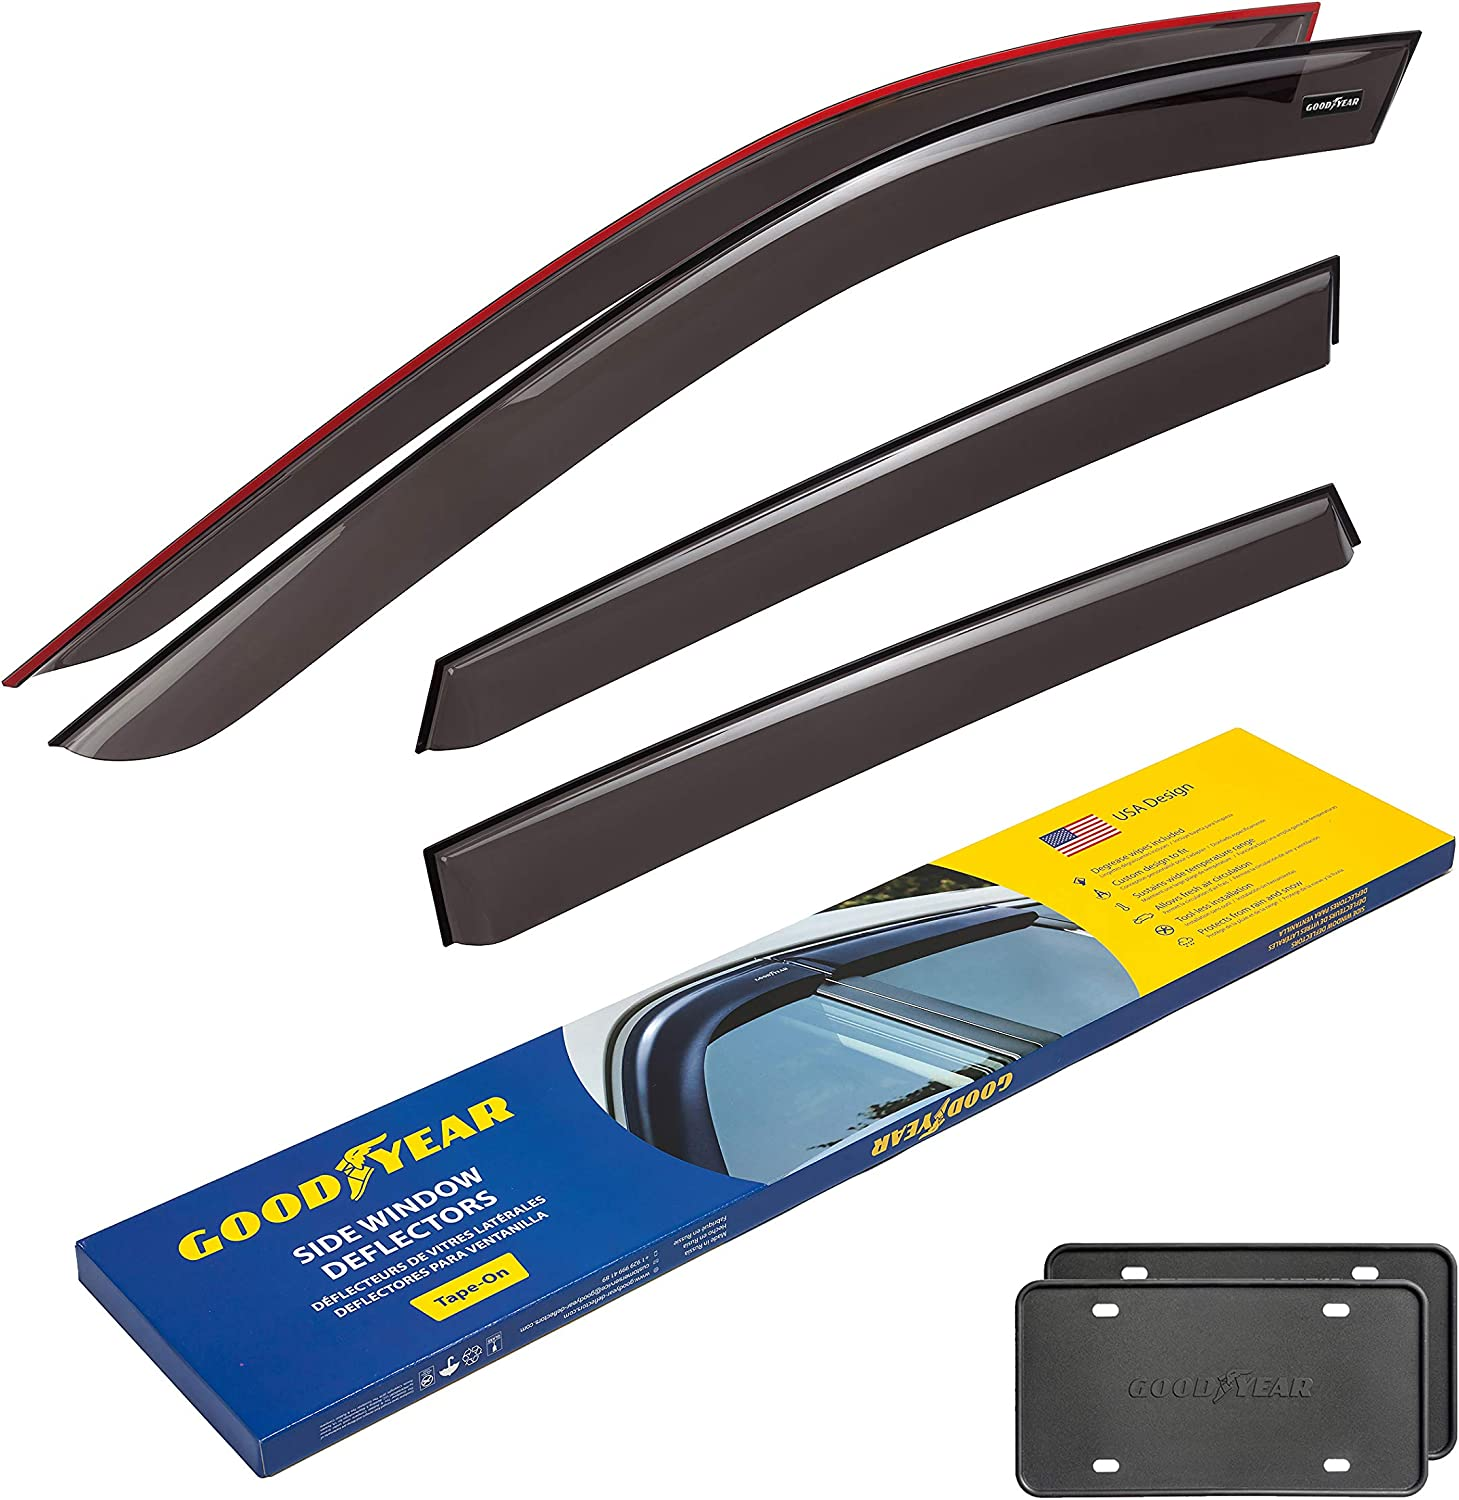 New popularity Goodyear Side Window Deflectors for Tape-o Mazda 2017-2021 CX-5 Max 76% OFF